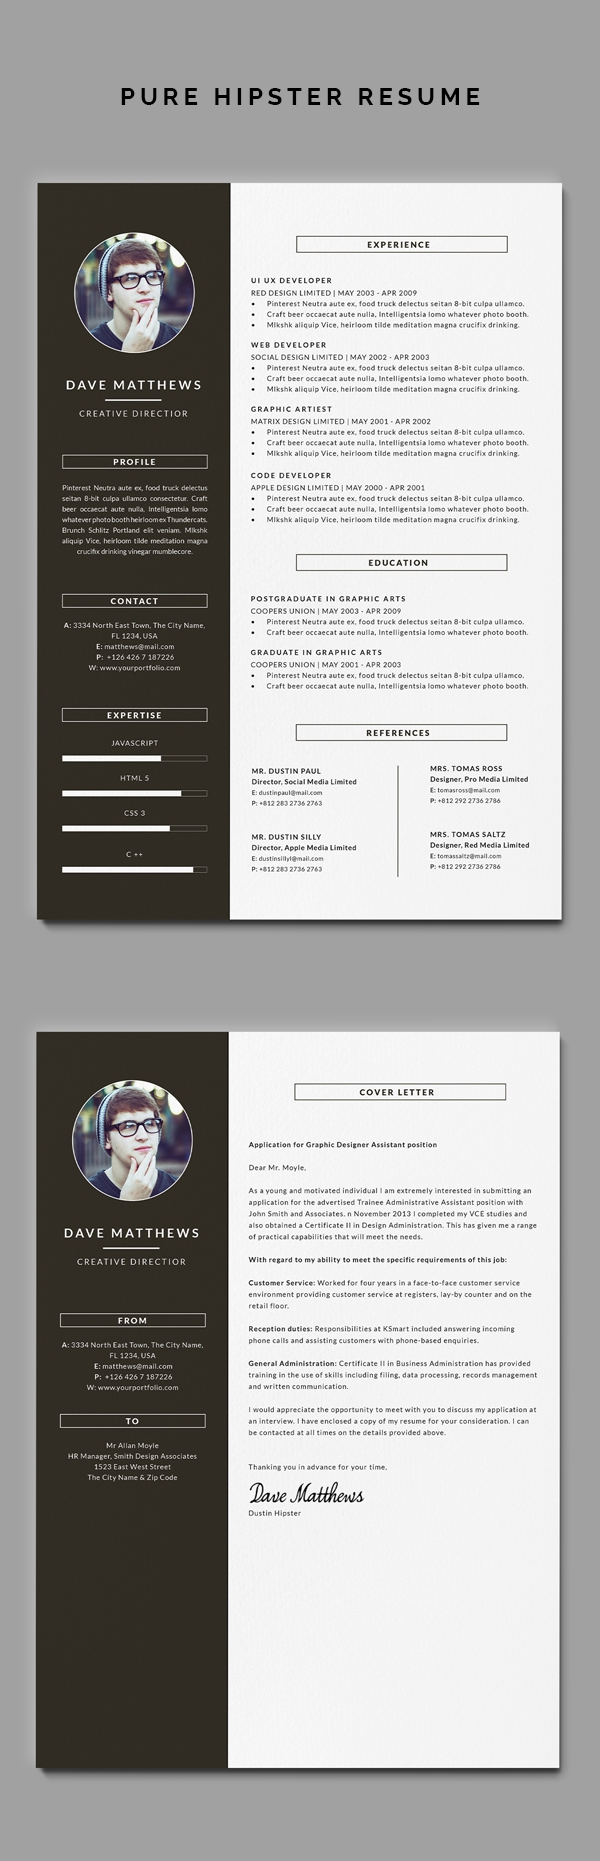 Hipster Resumecv With Cover Letter On Behance